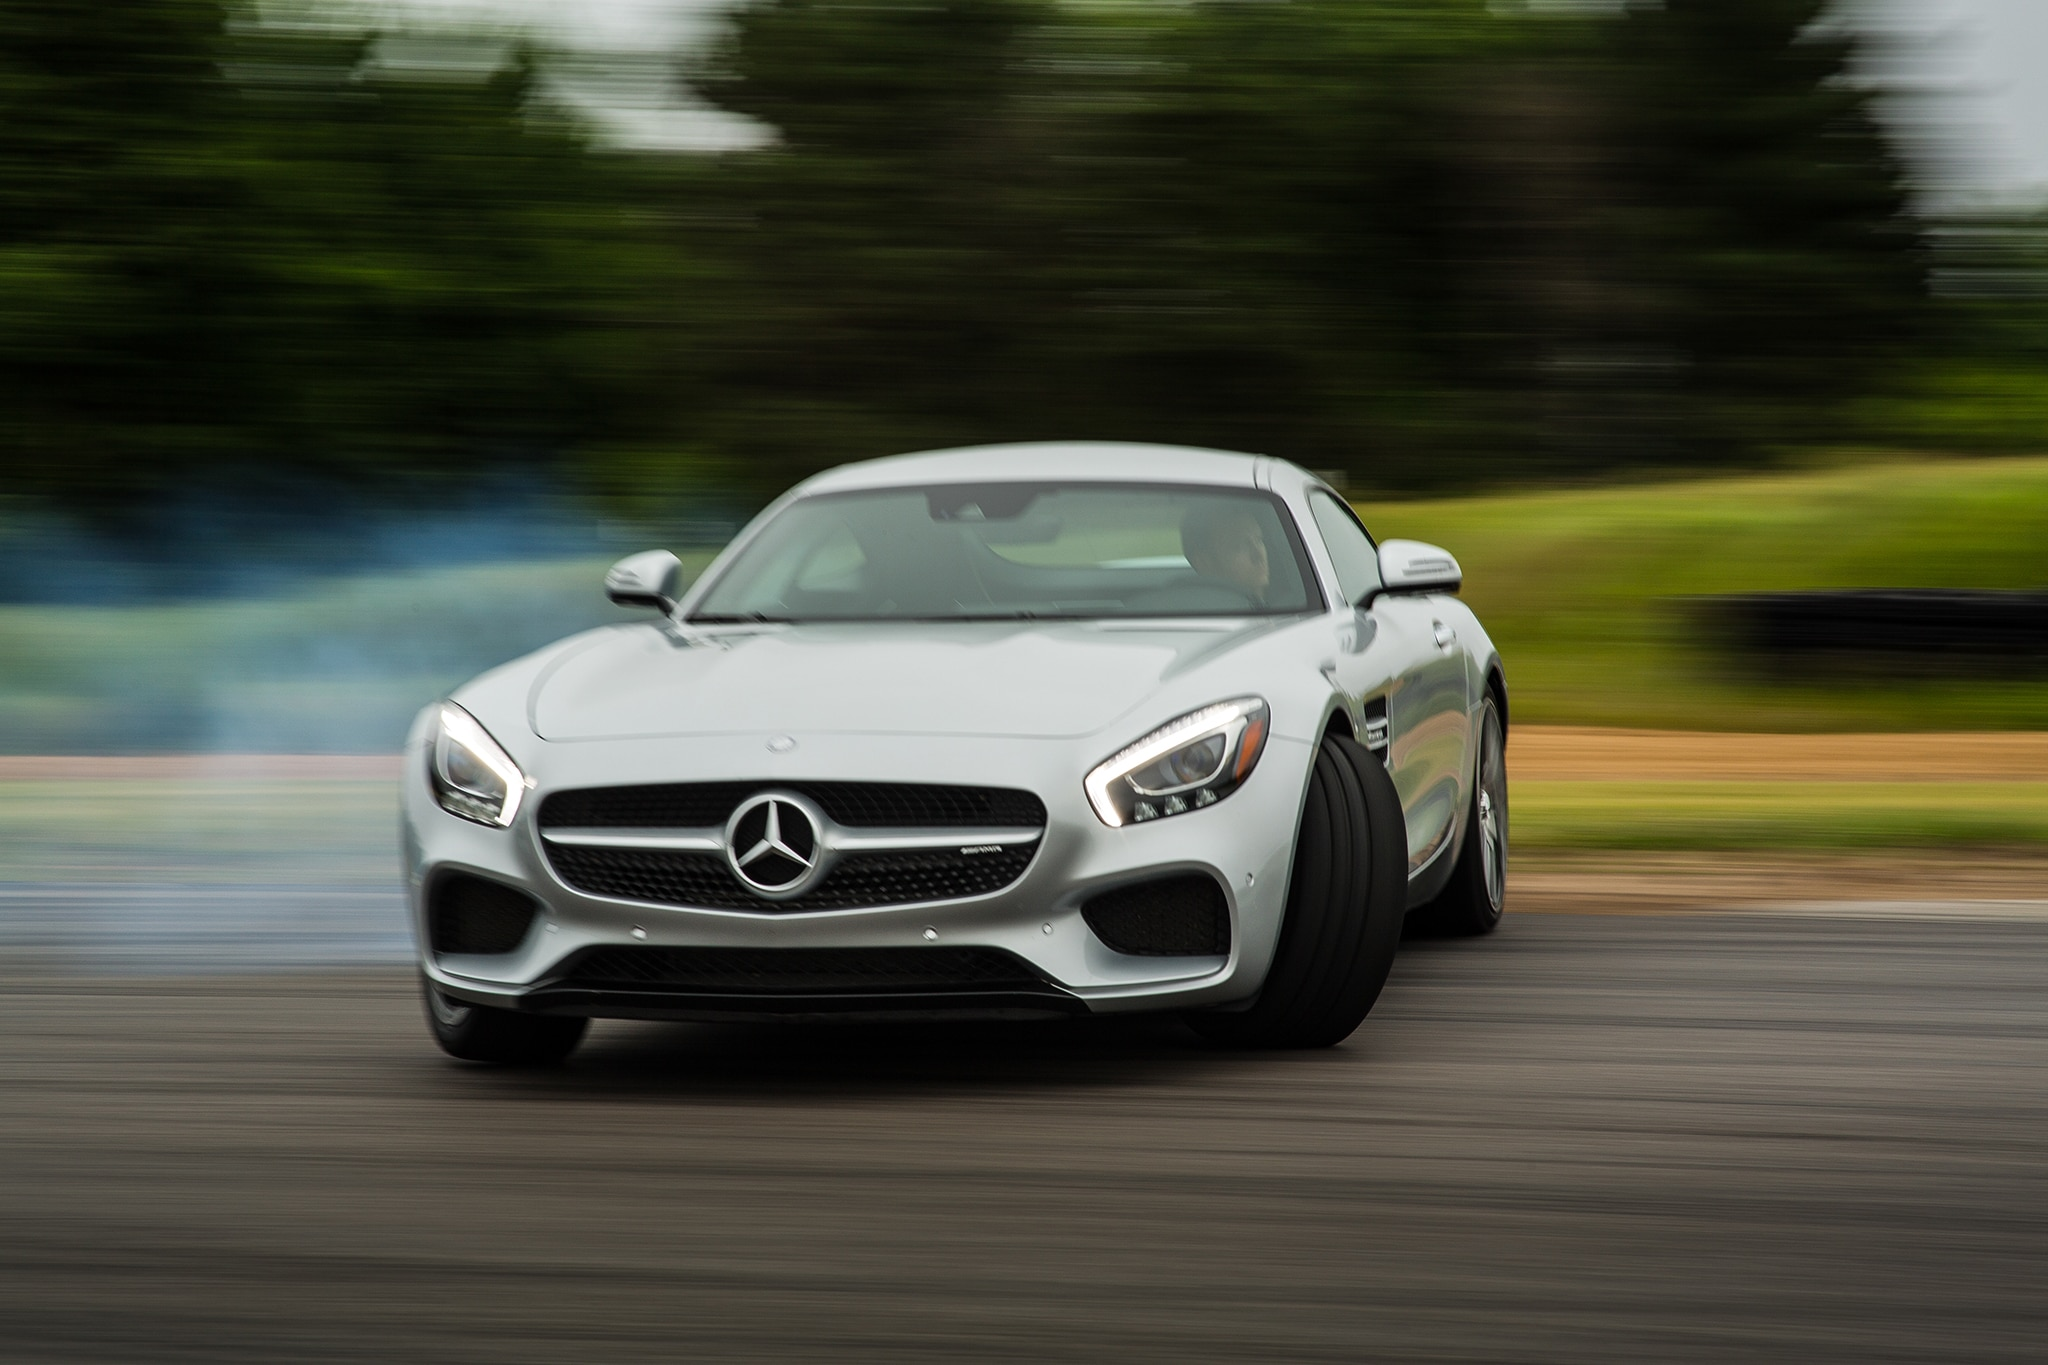 2016 mercedes benz amg gt s for sale cargurus autos post. Black Bedroom Furniture Sets. Home Design Ideas